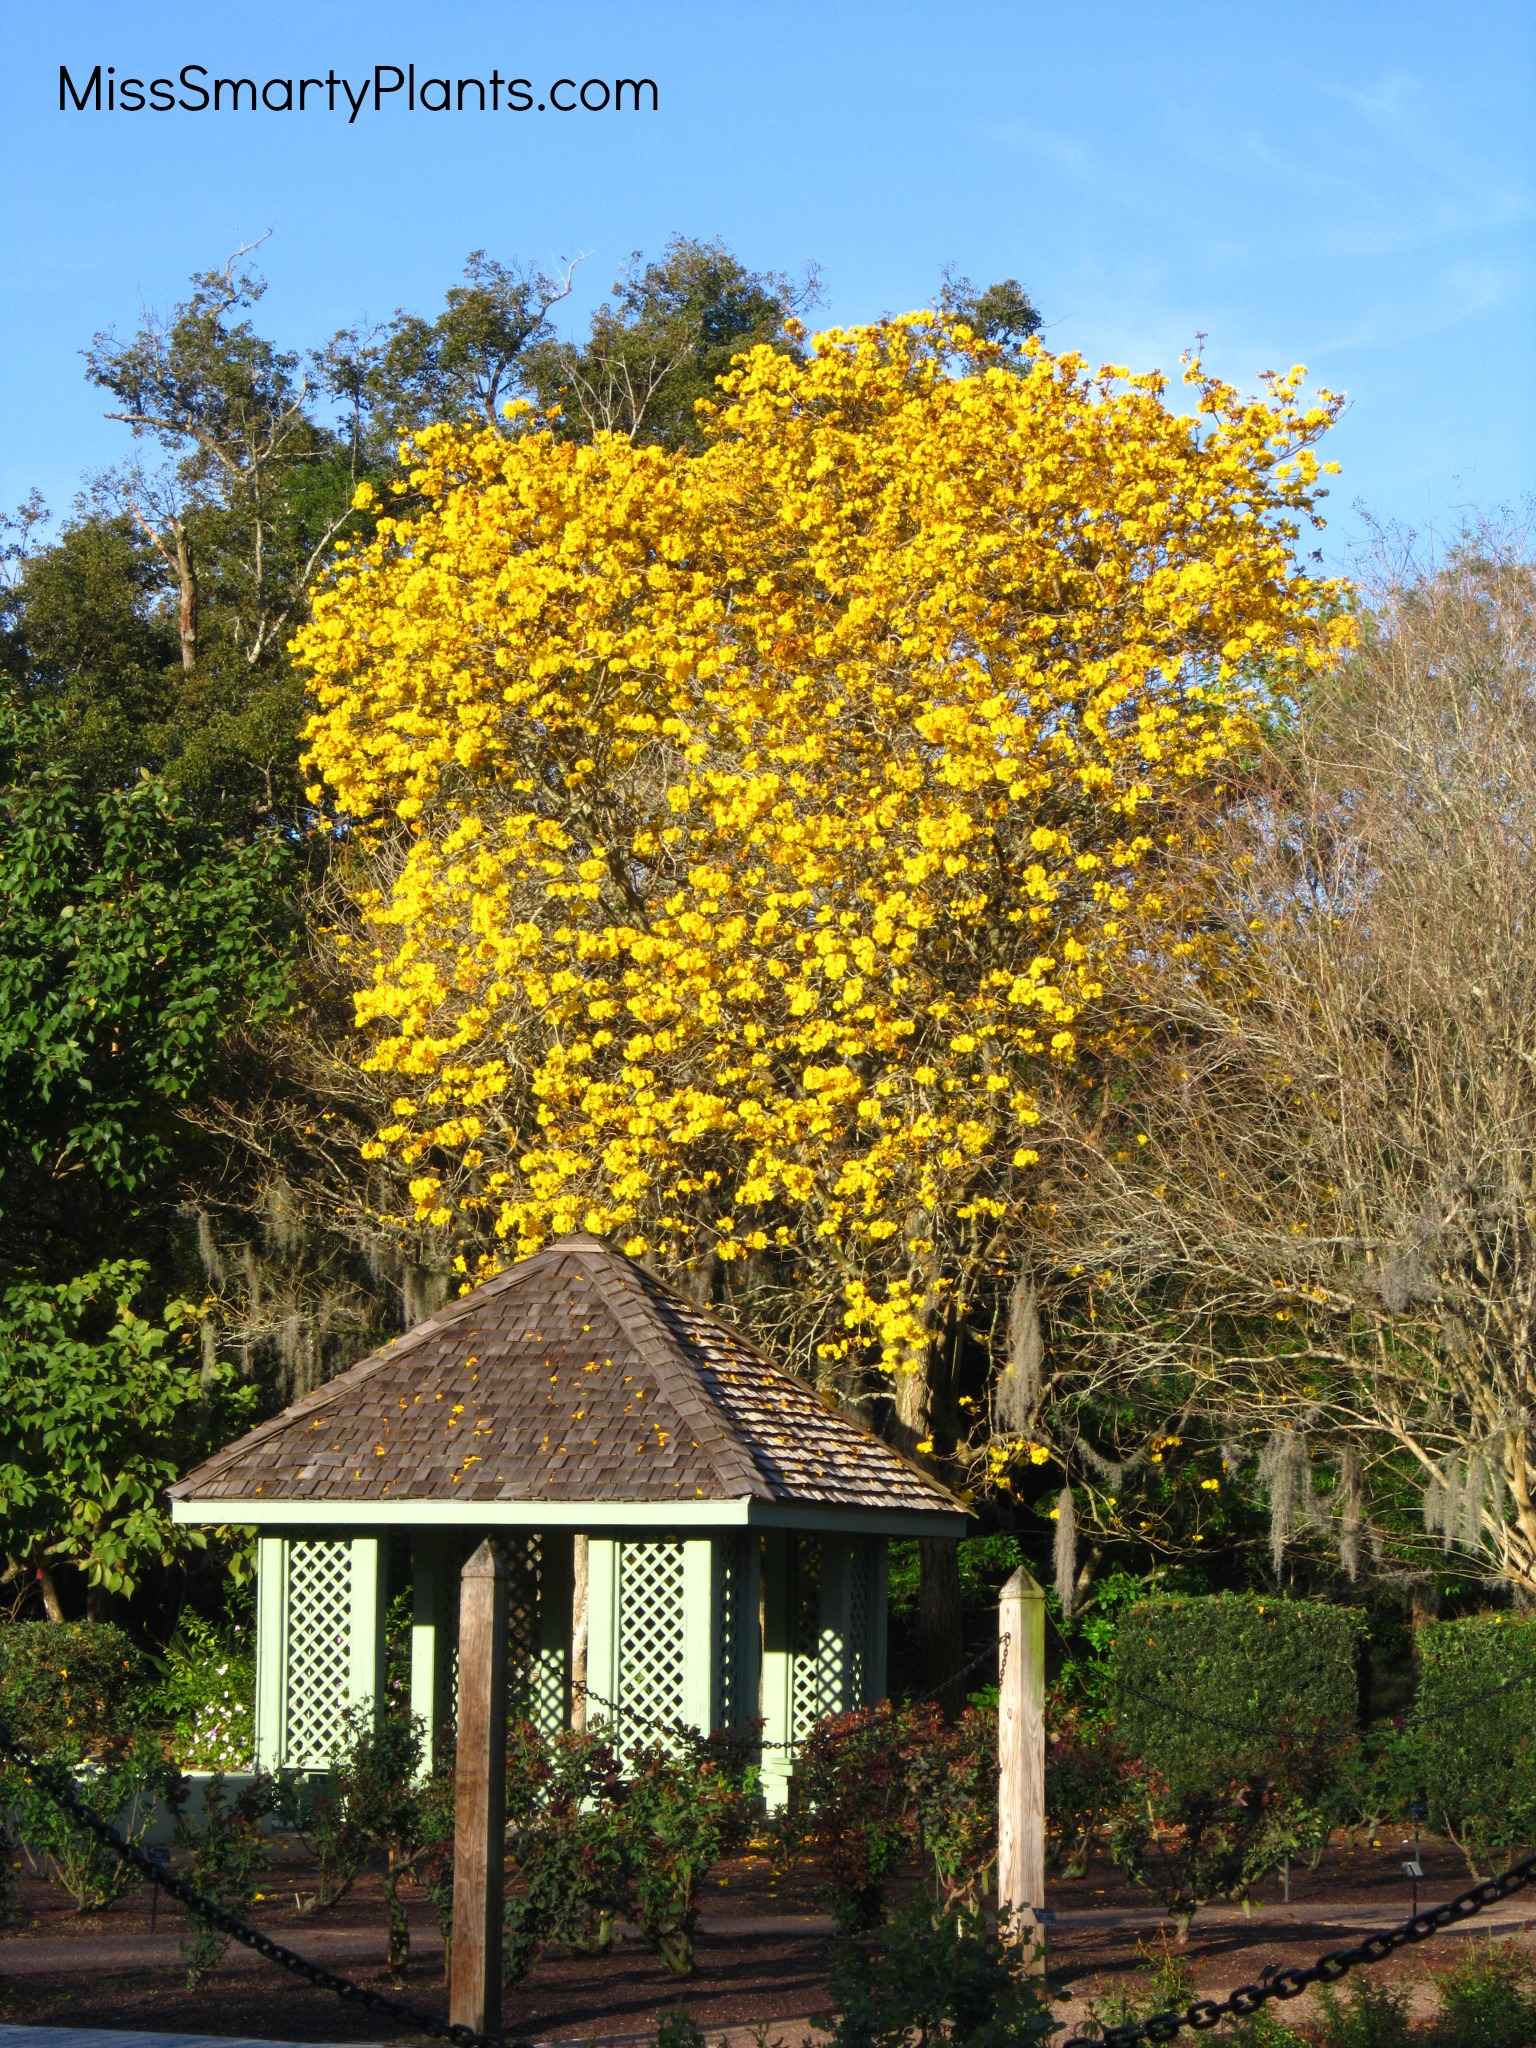 Yellow flowers tabebuia trees miss smarty plants it seems like each march the most commonly asked question is what are those yellow flower trees all over town those my friends are golden trumpet or mightylinksfo